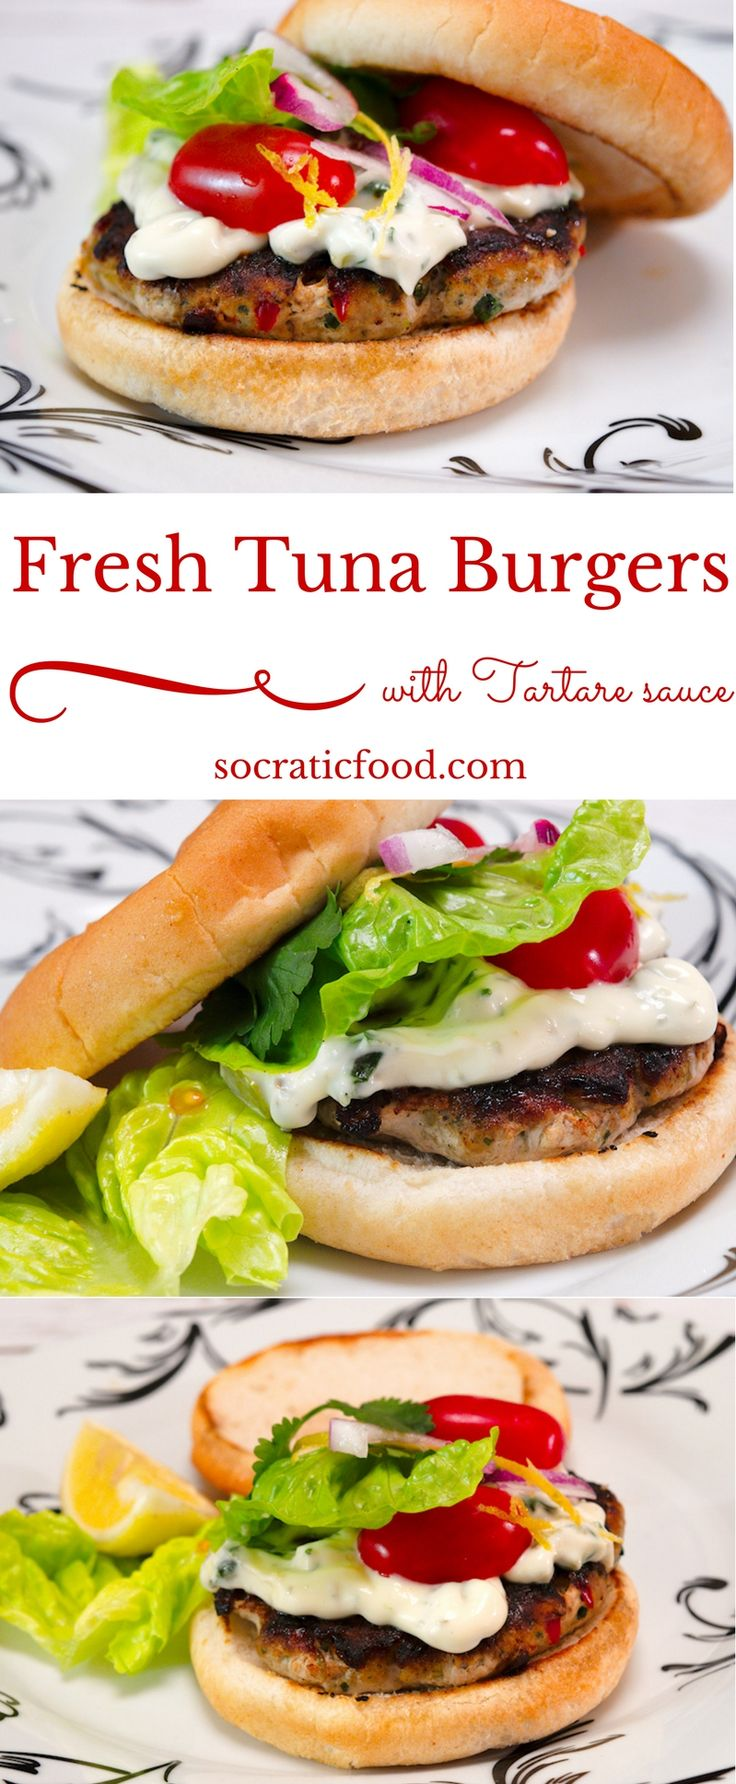 ... ideas about Tuna Burgers on Pinterest | Fritters, Sandwiches and Tuna